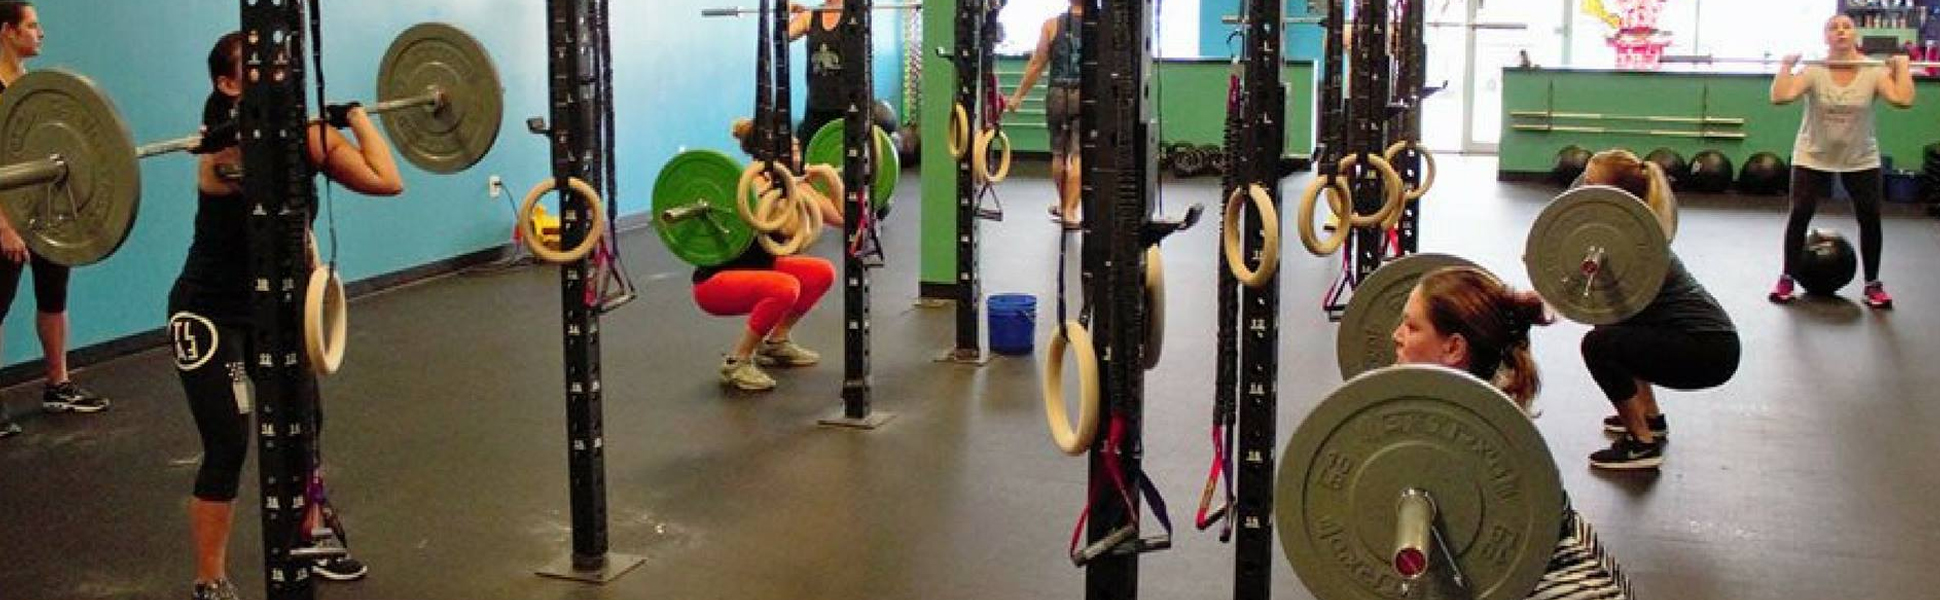 CrossFit Gym Drop In Near Me In Valrico